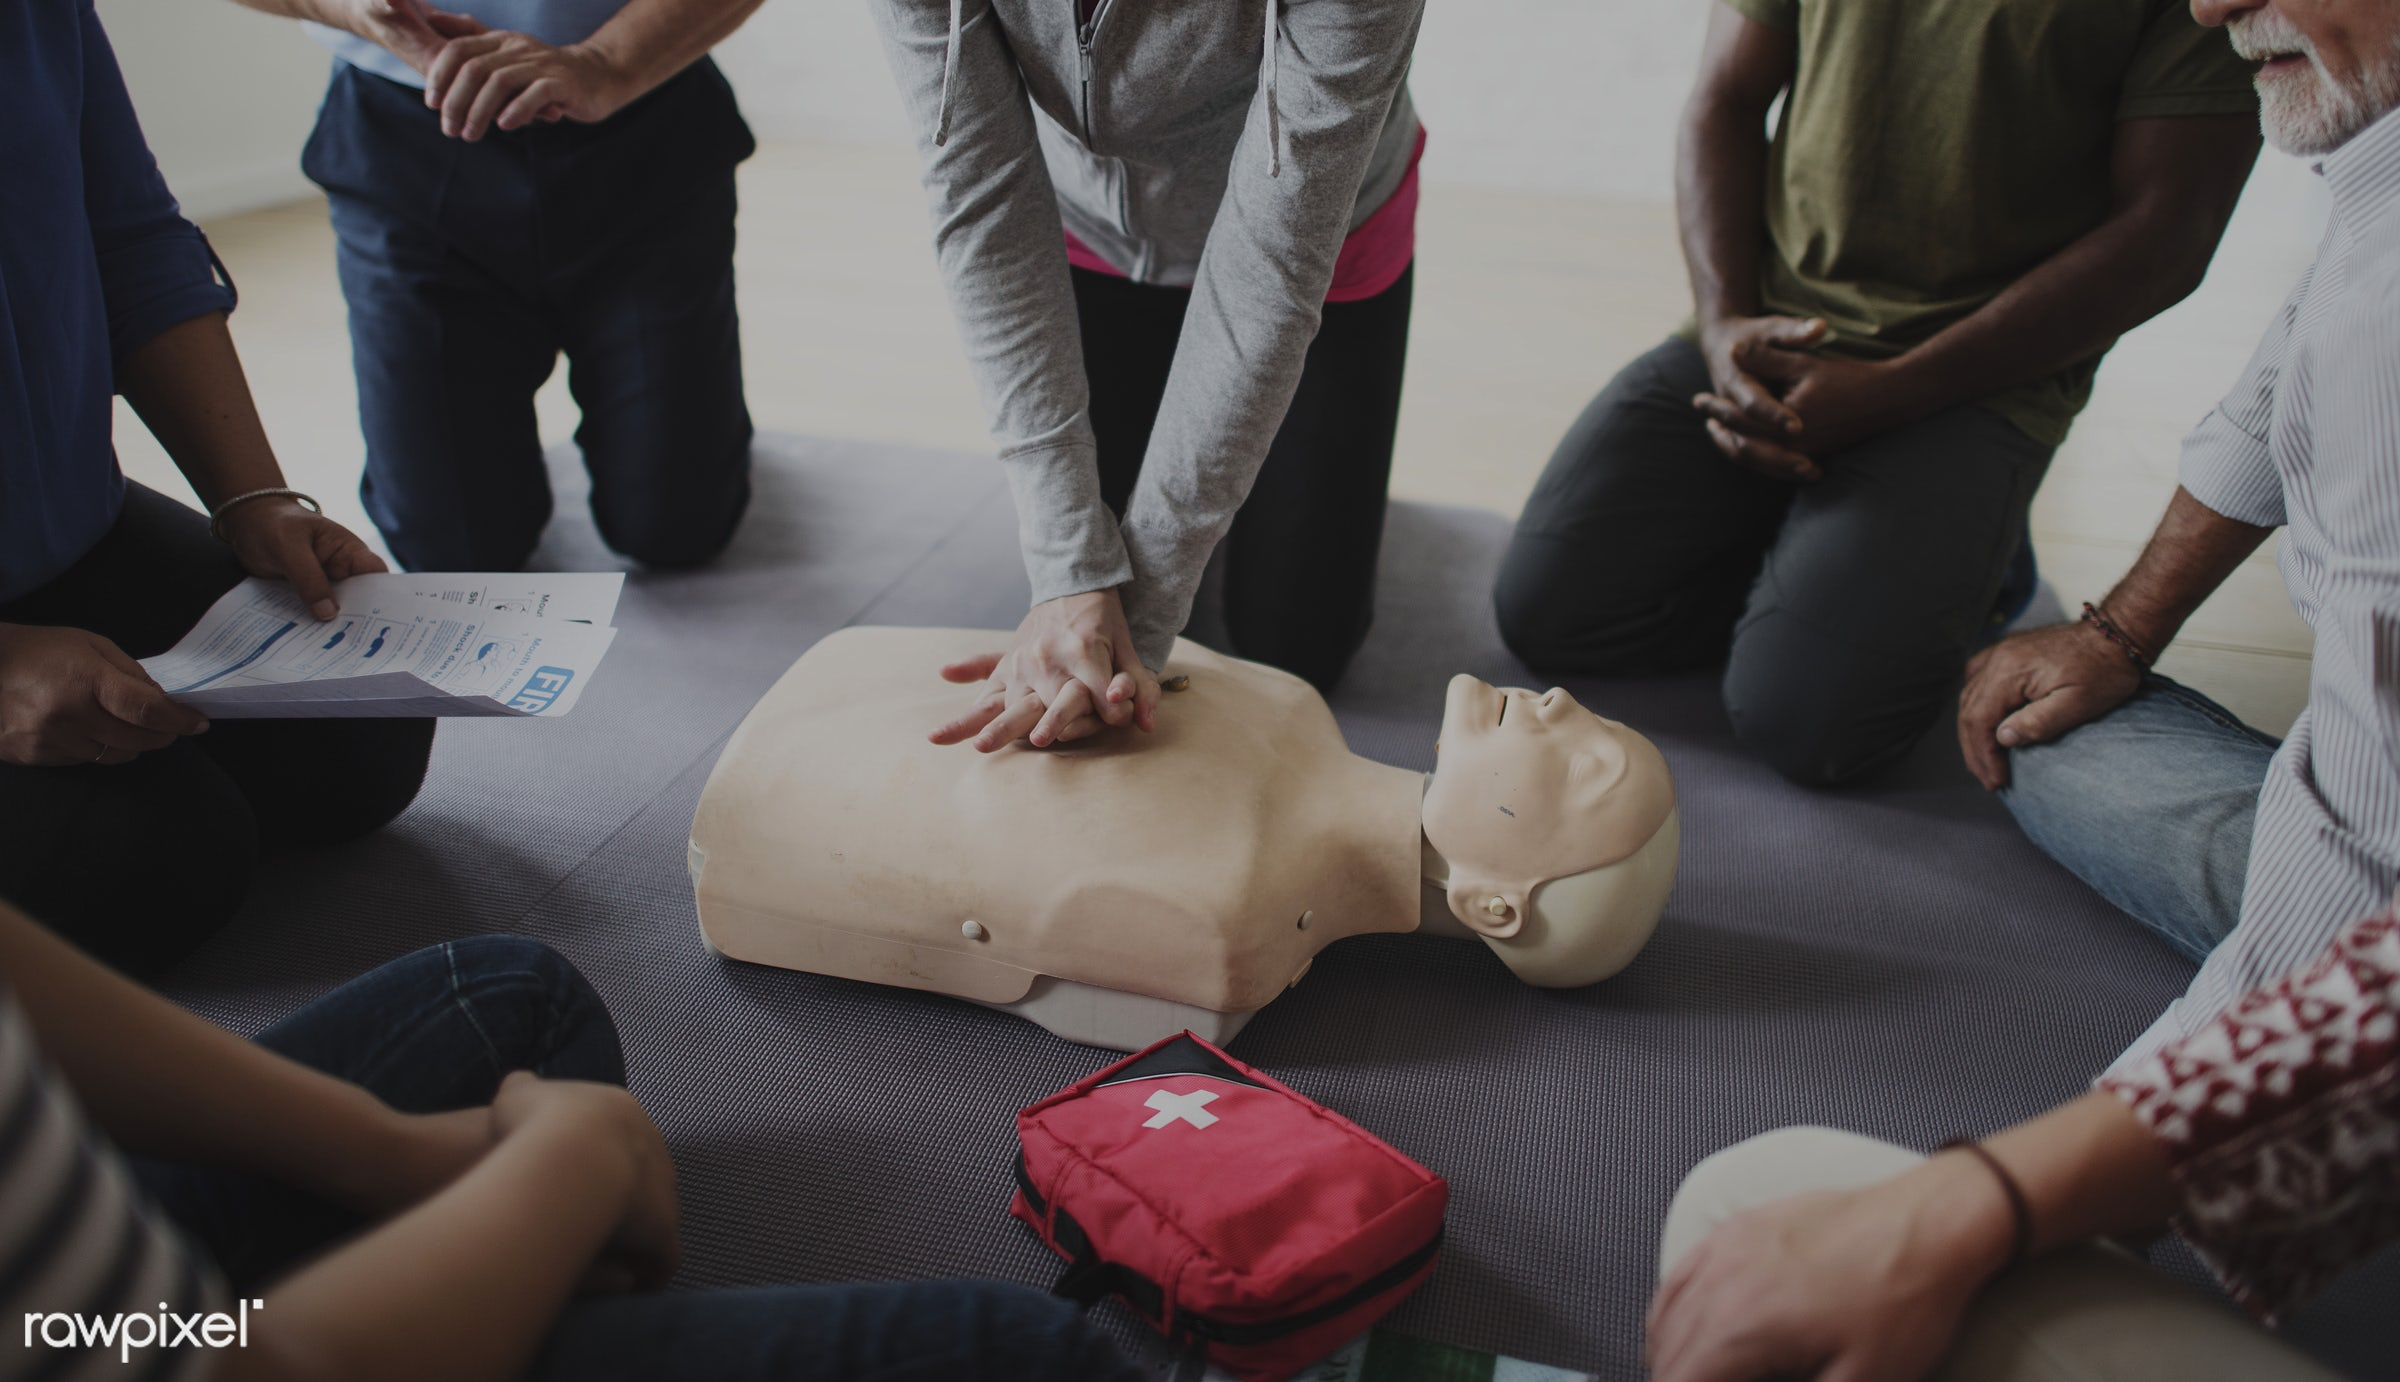 Diverse people taking a CPR first aid training class - cpr training, person, knowledge, save, first aid, resuscitation,...